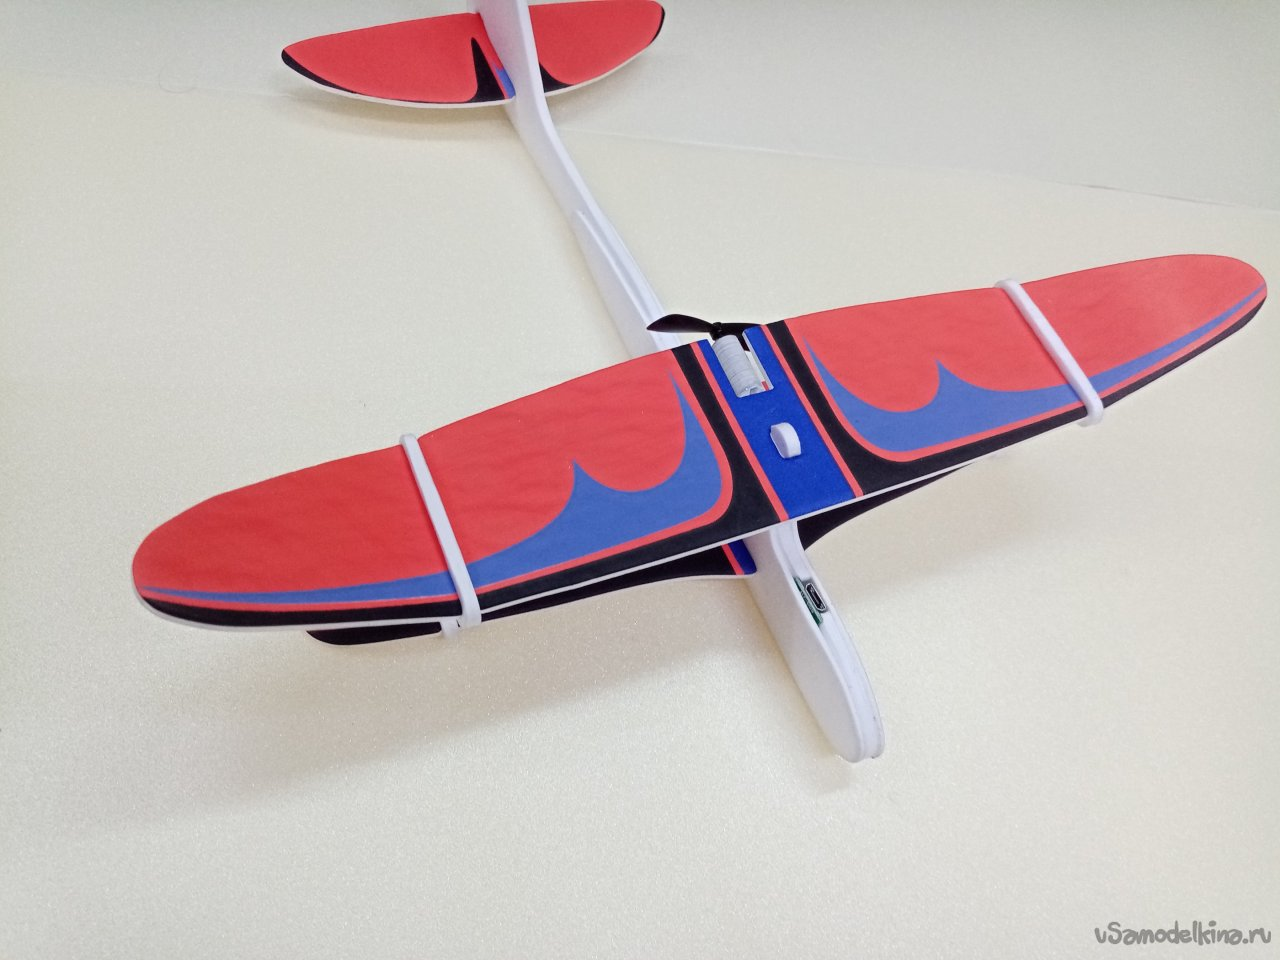 New Year's gift for yourself, children's airplane